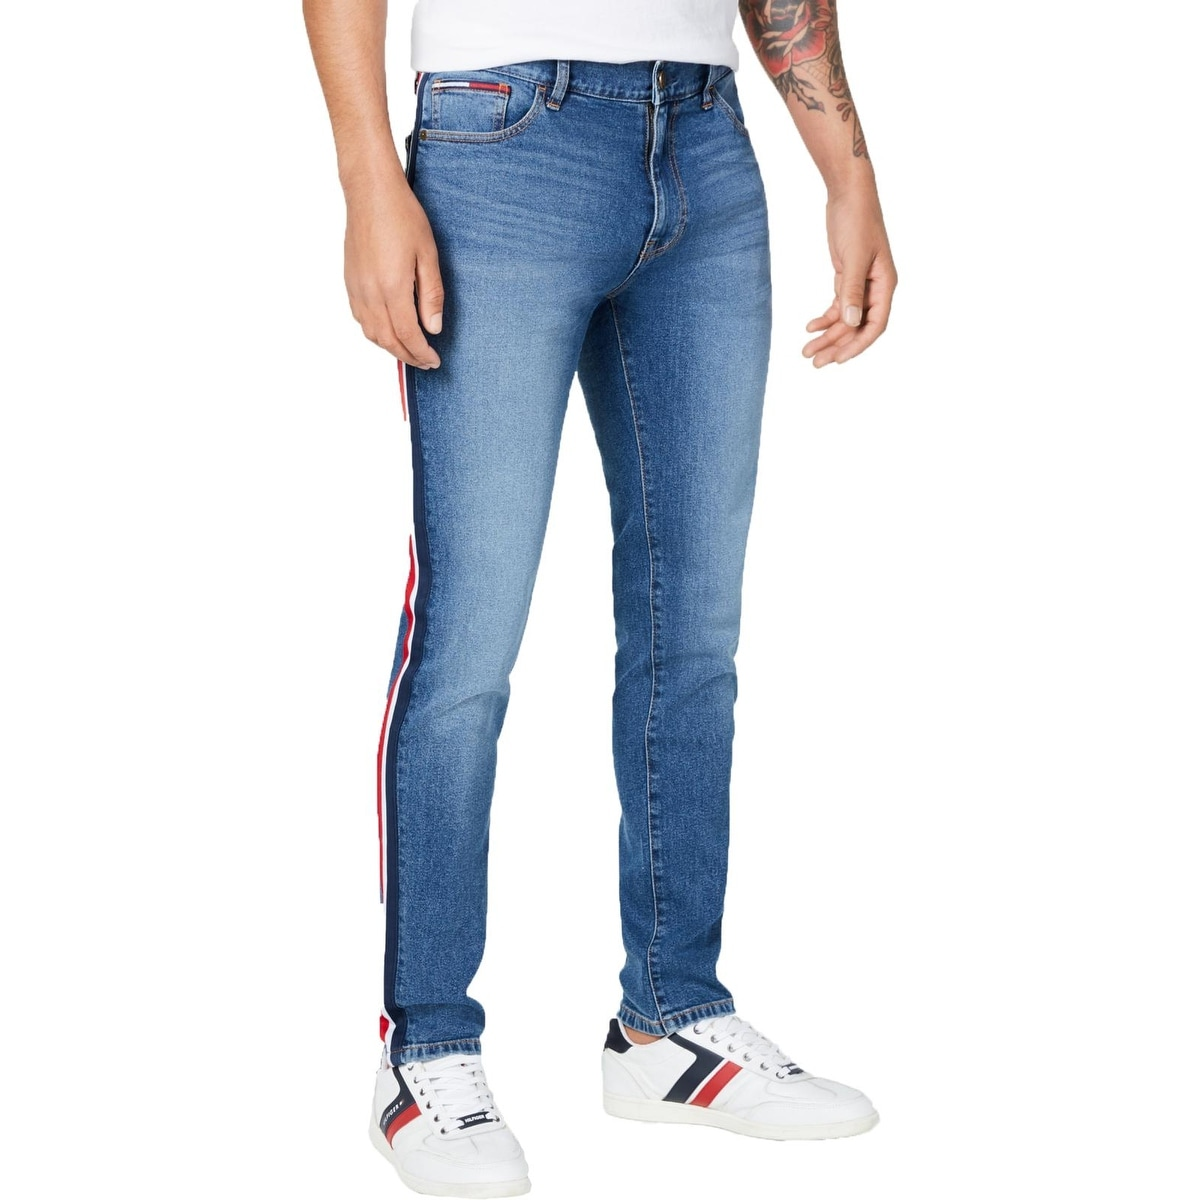 Men's Tommy Hilfiger Pants | Find Great Men's Clothing Deals